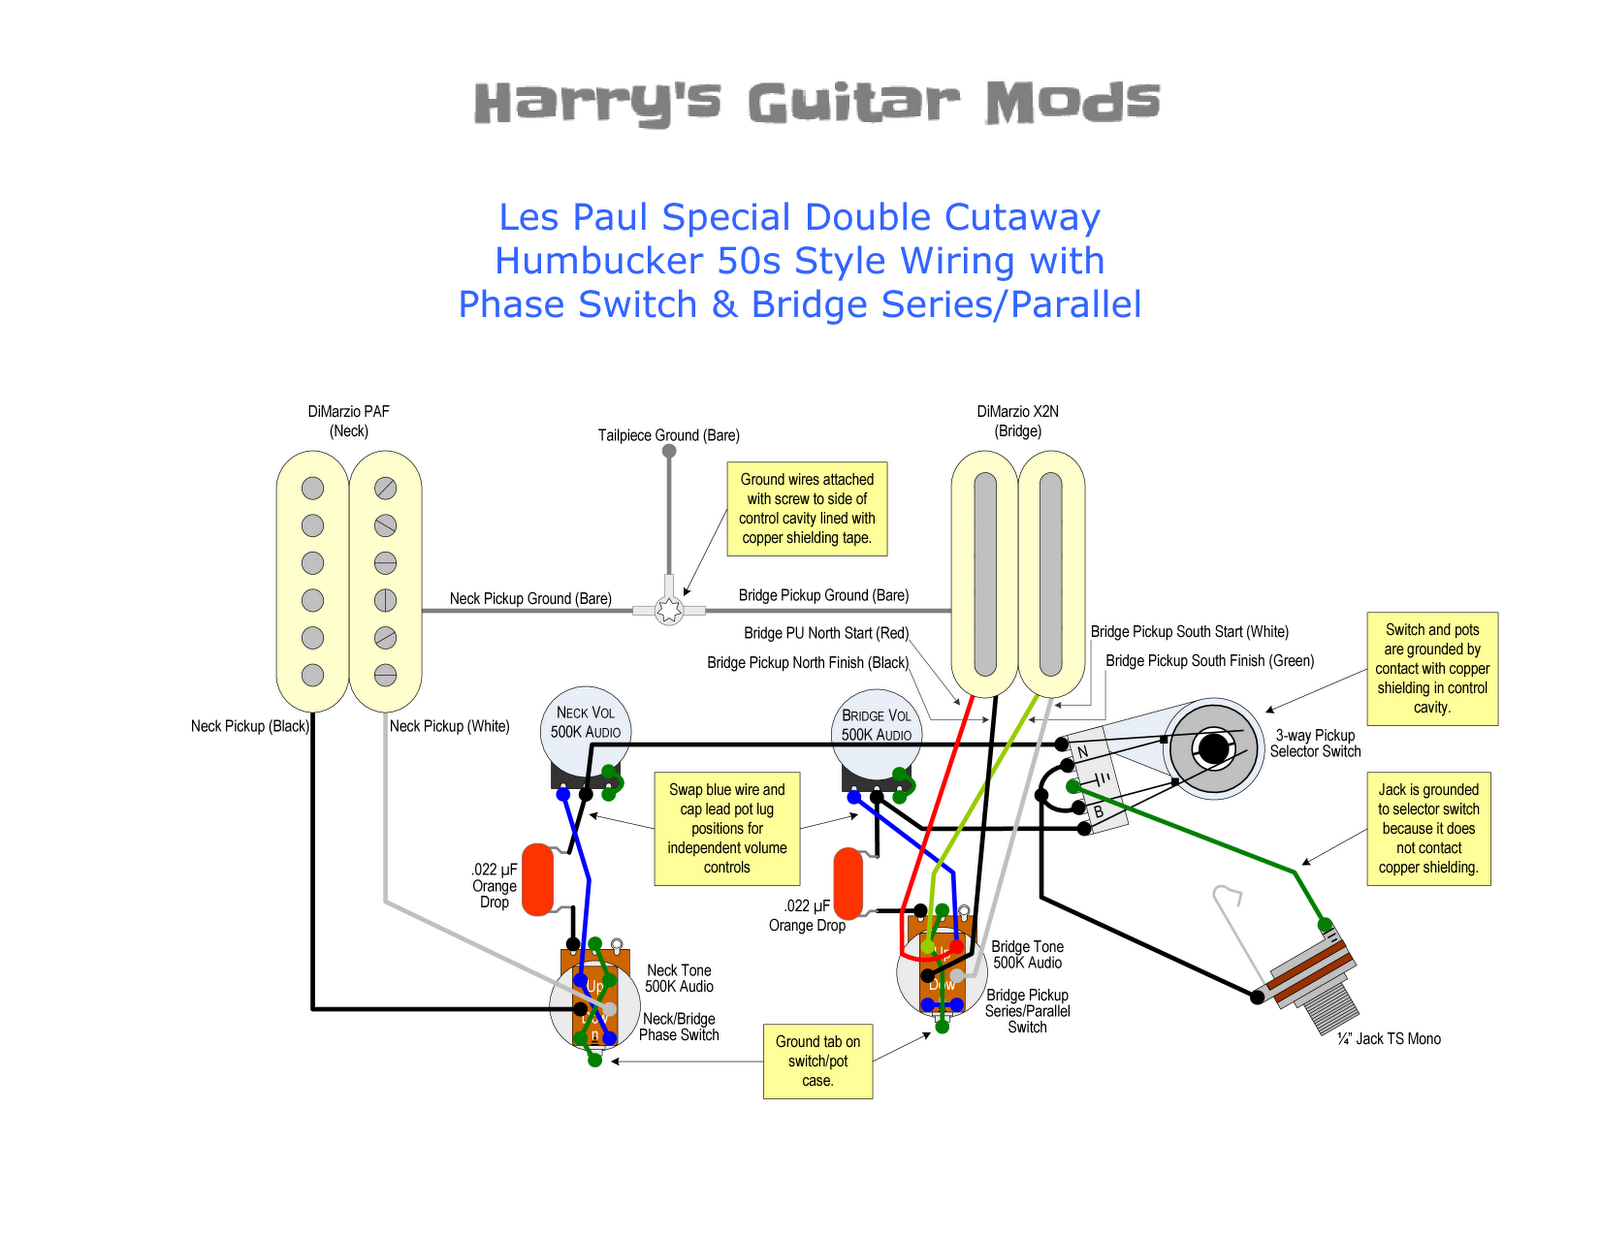 LPS+Wiring+Diagram harry's guitar mods controls wiring upgrade switchcraft jack wiring diagram at aneh.co